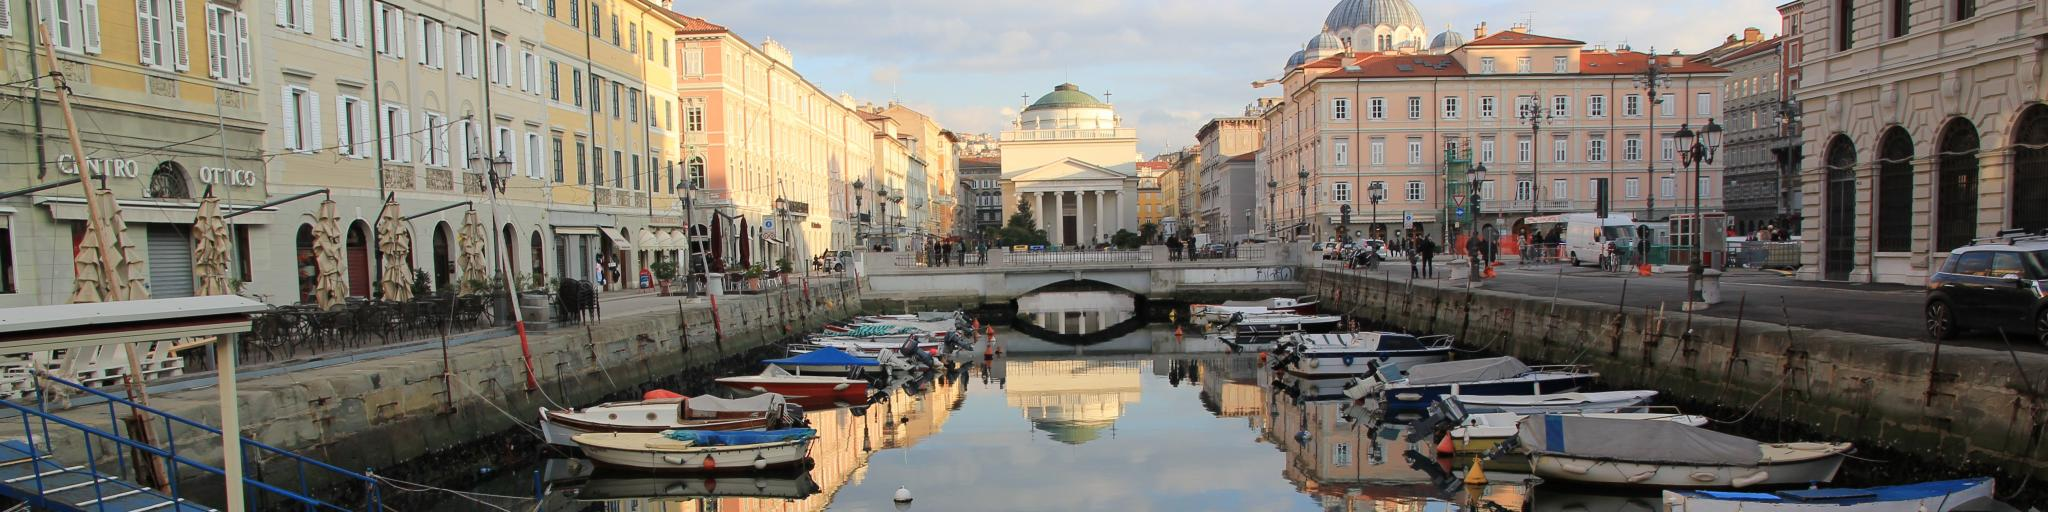 Clouds reflect on a canal in the middle of Trieste, Italy